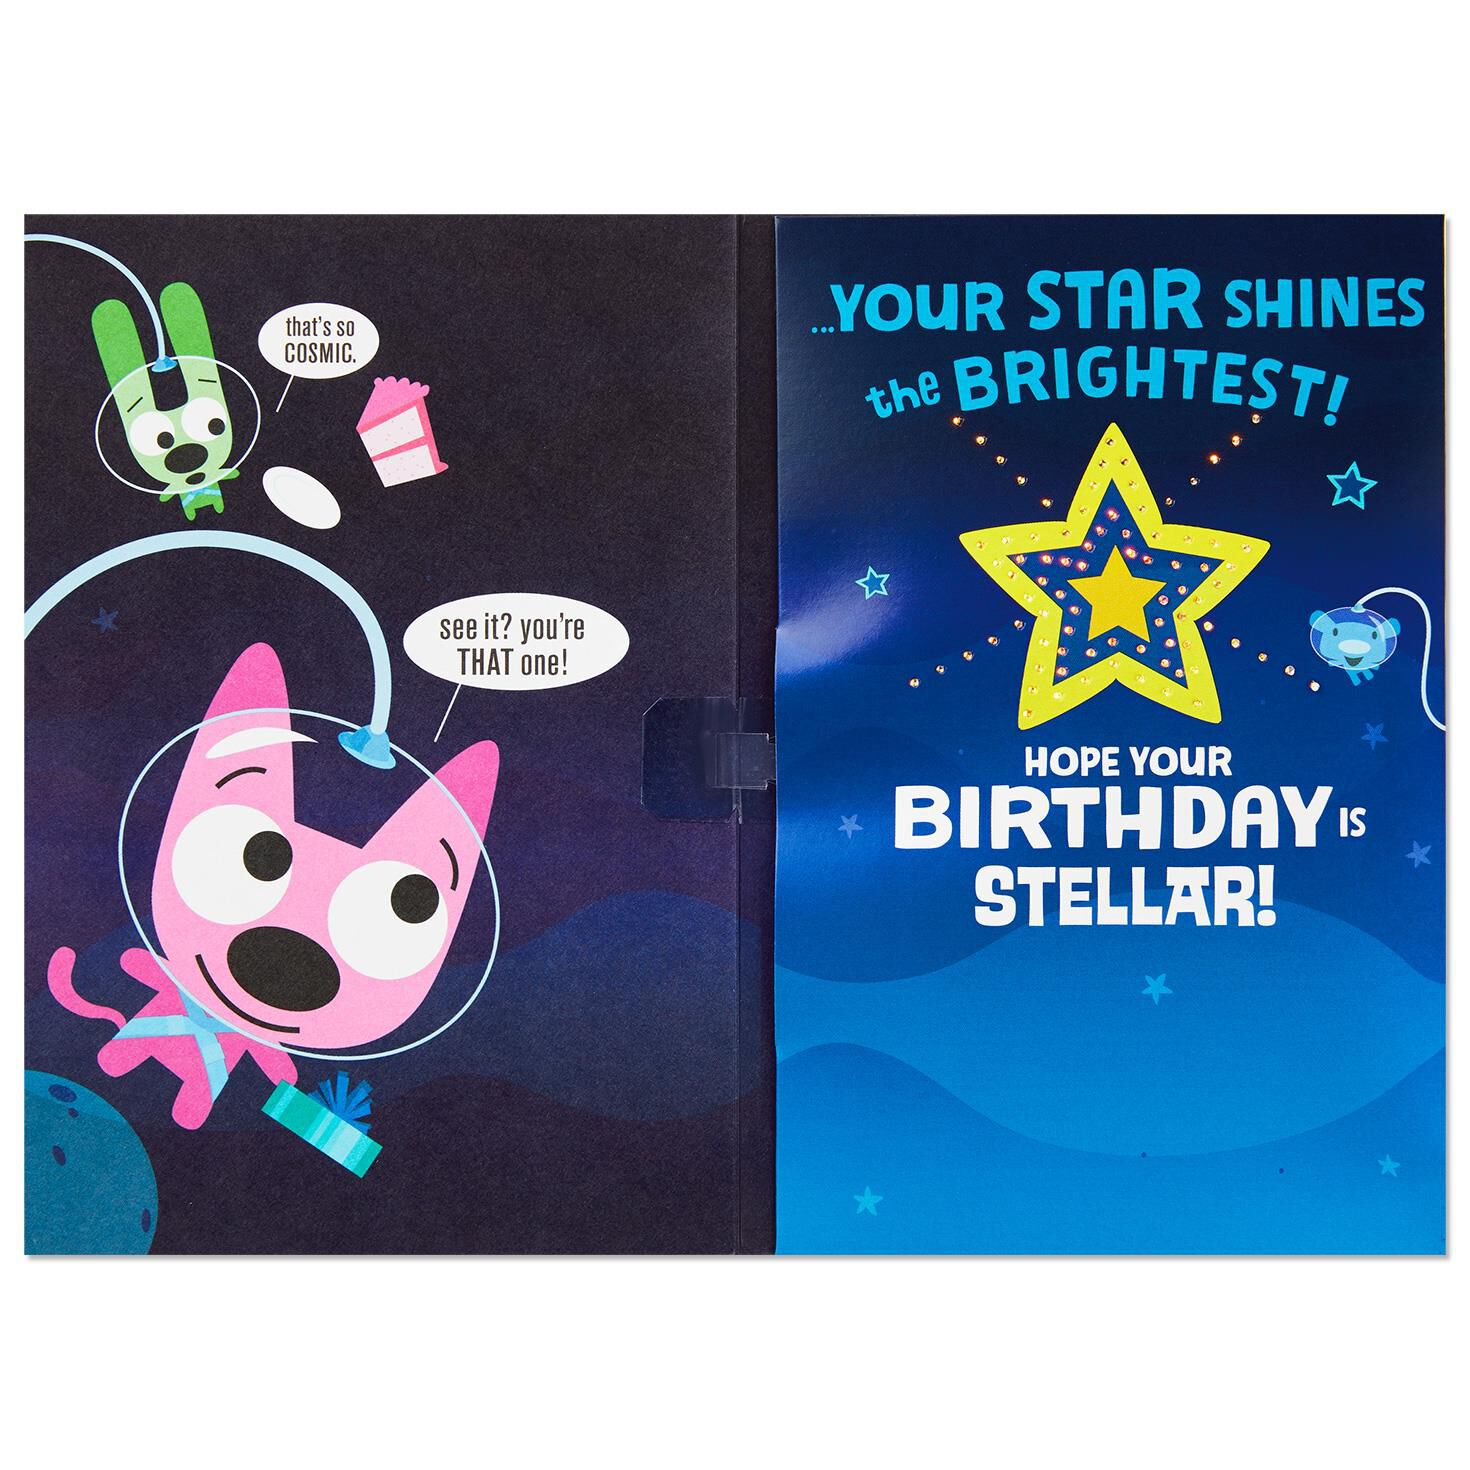 Hoopsandyoyo Space Travelers Birthday Card With Lights And Sound Root Sne Source Image Jpg 1024x1024 Hoops